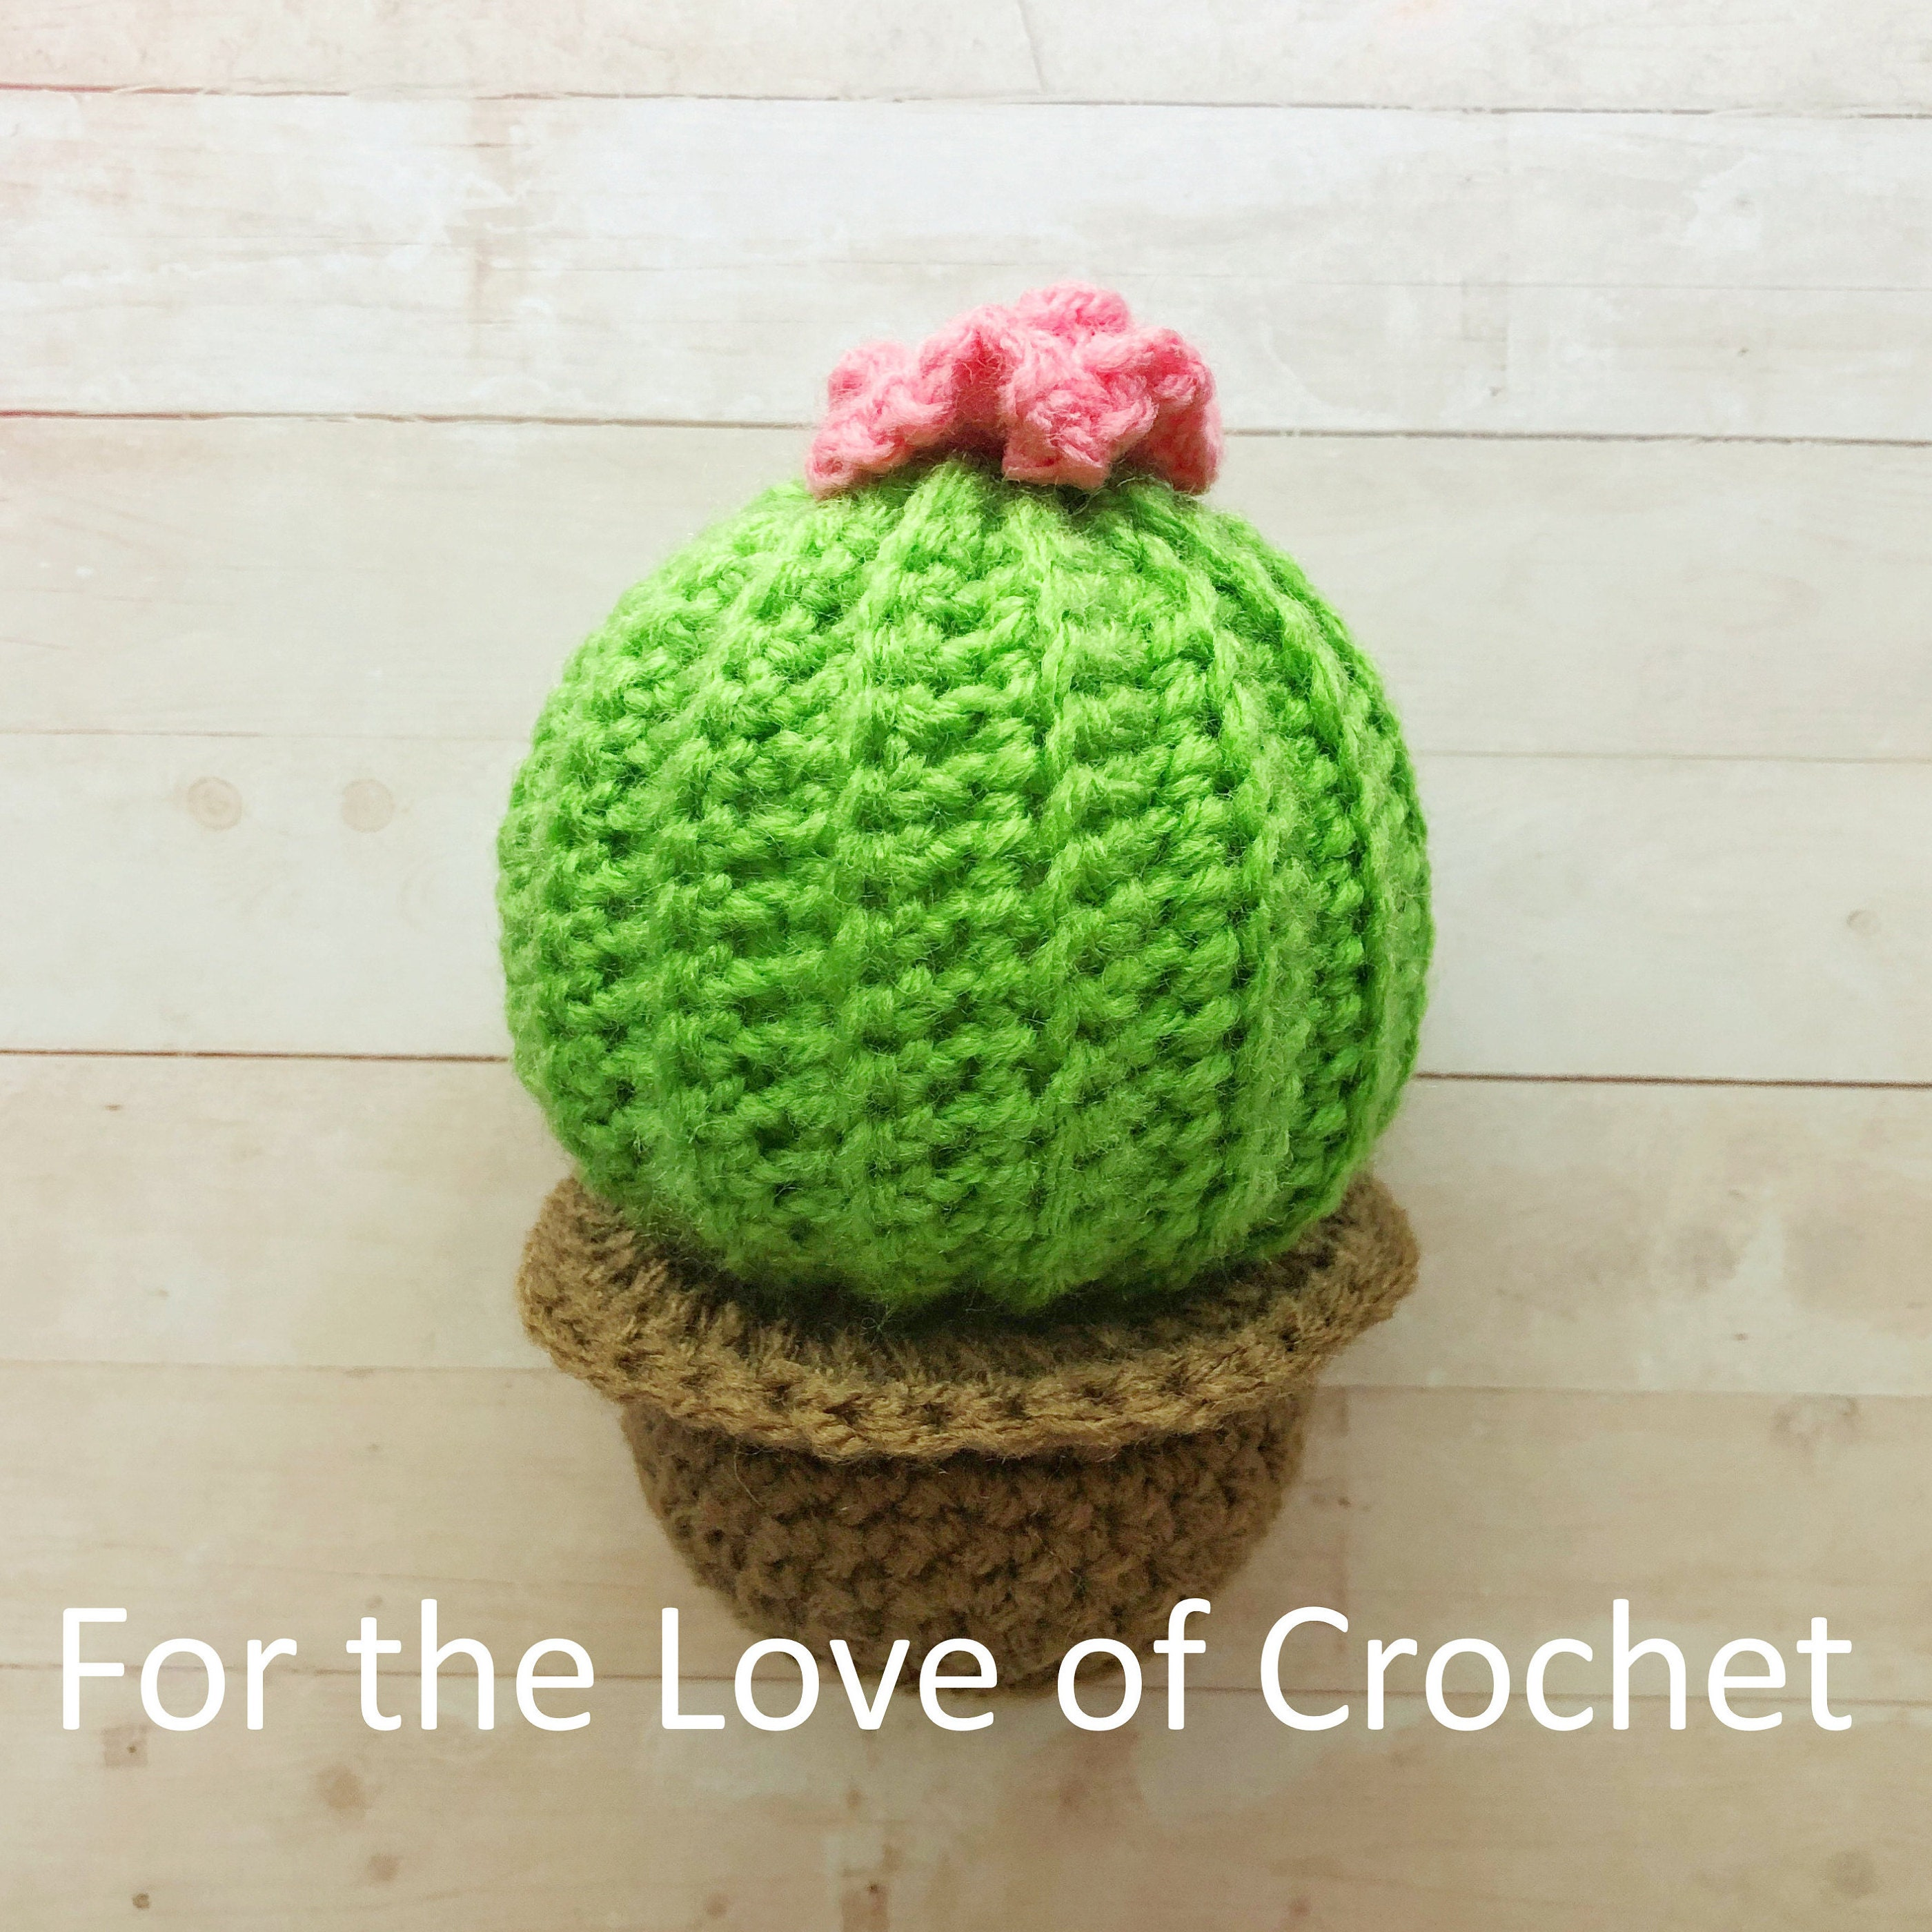 For The Love Of Crochet By Loveofcrochet01 On Etsy